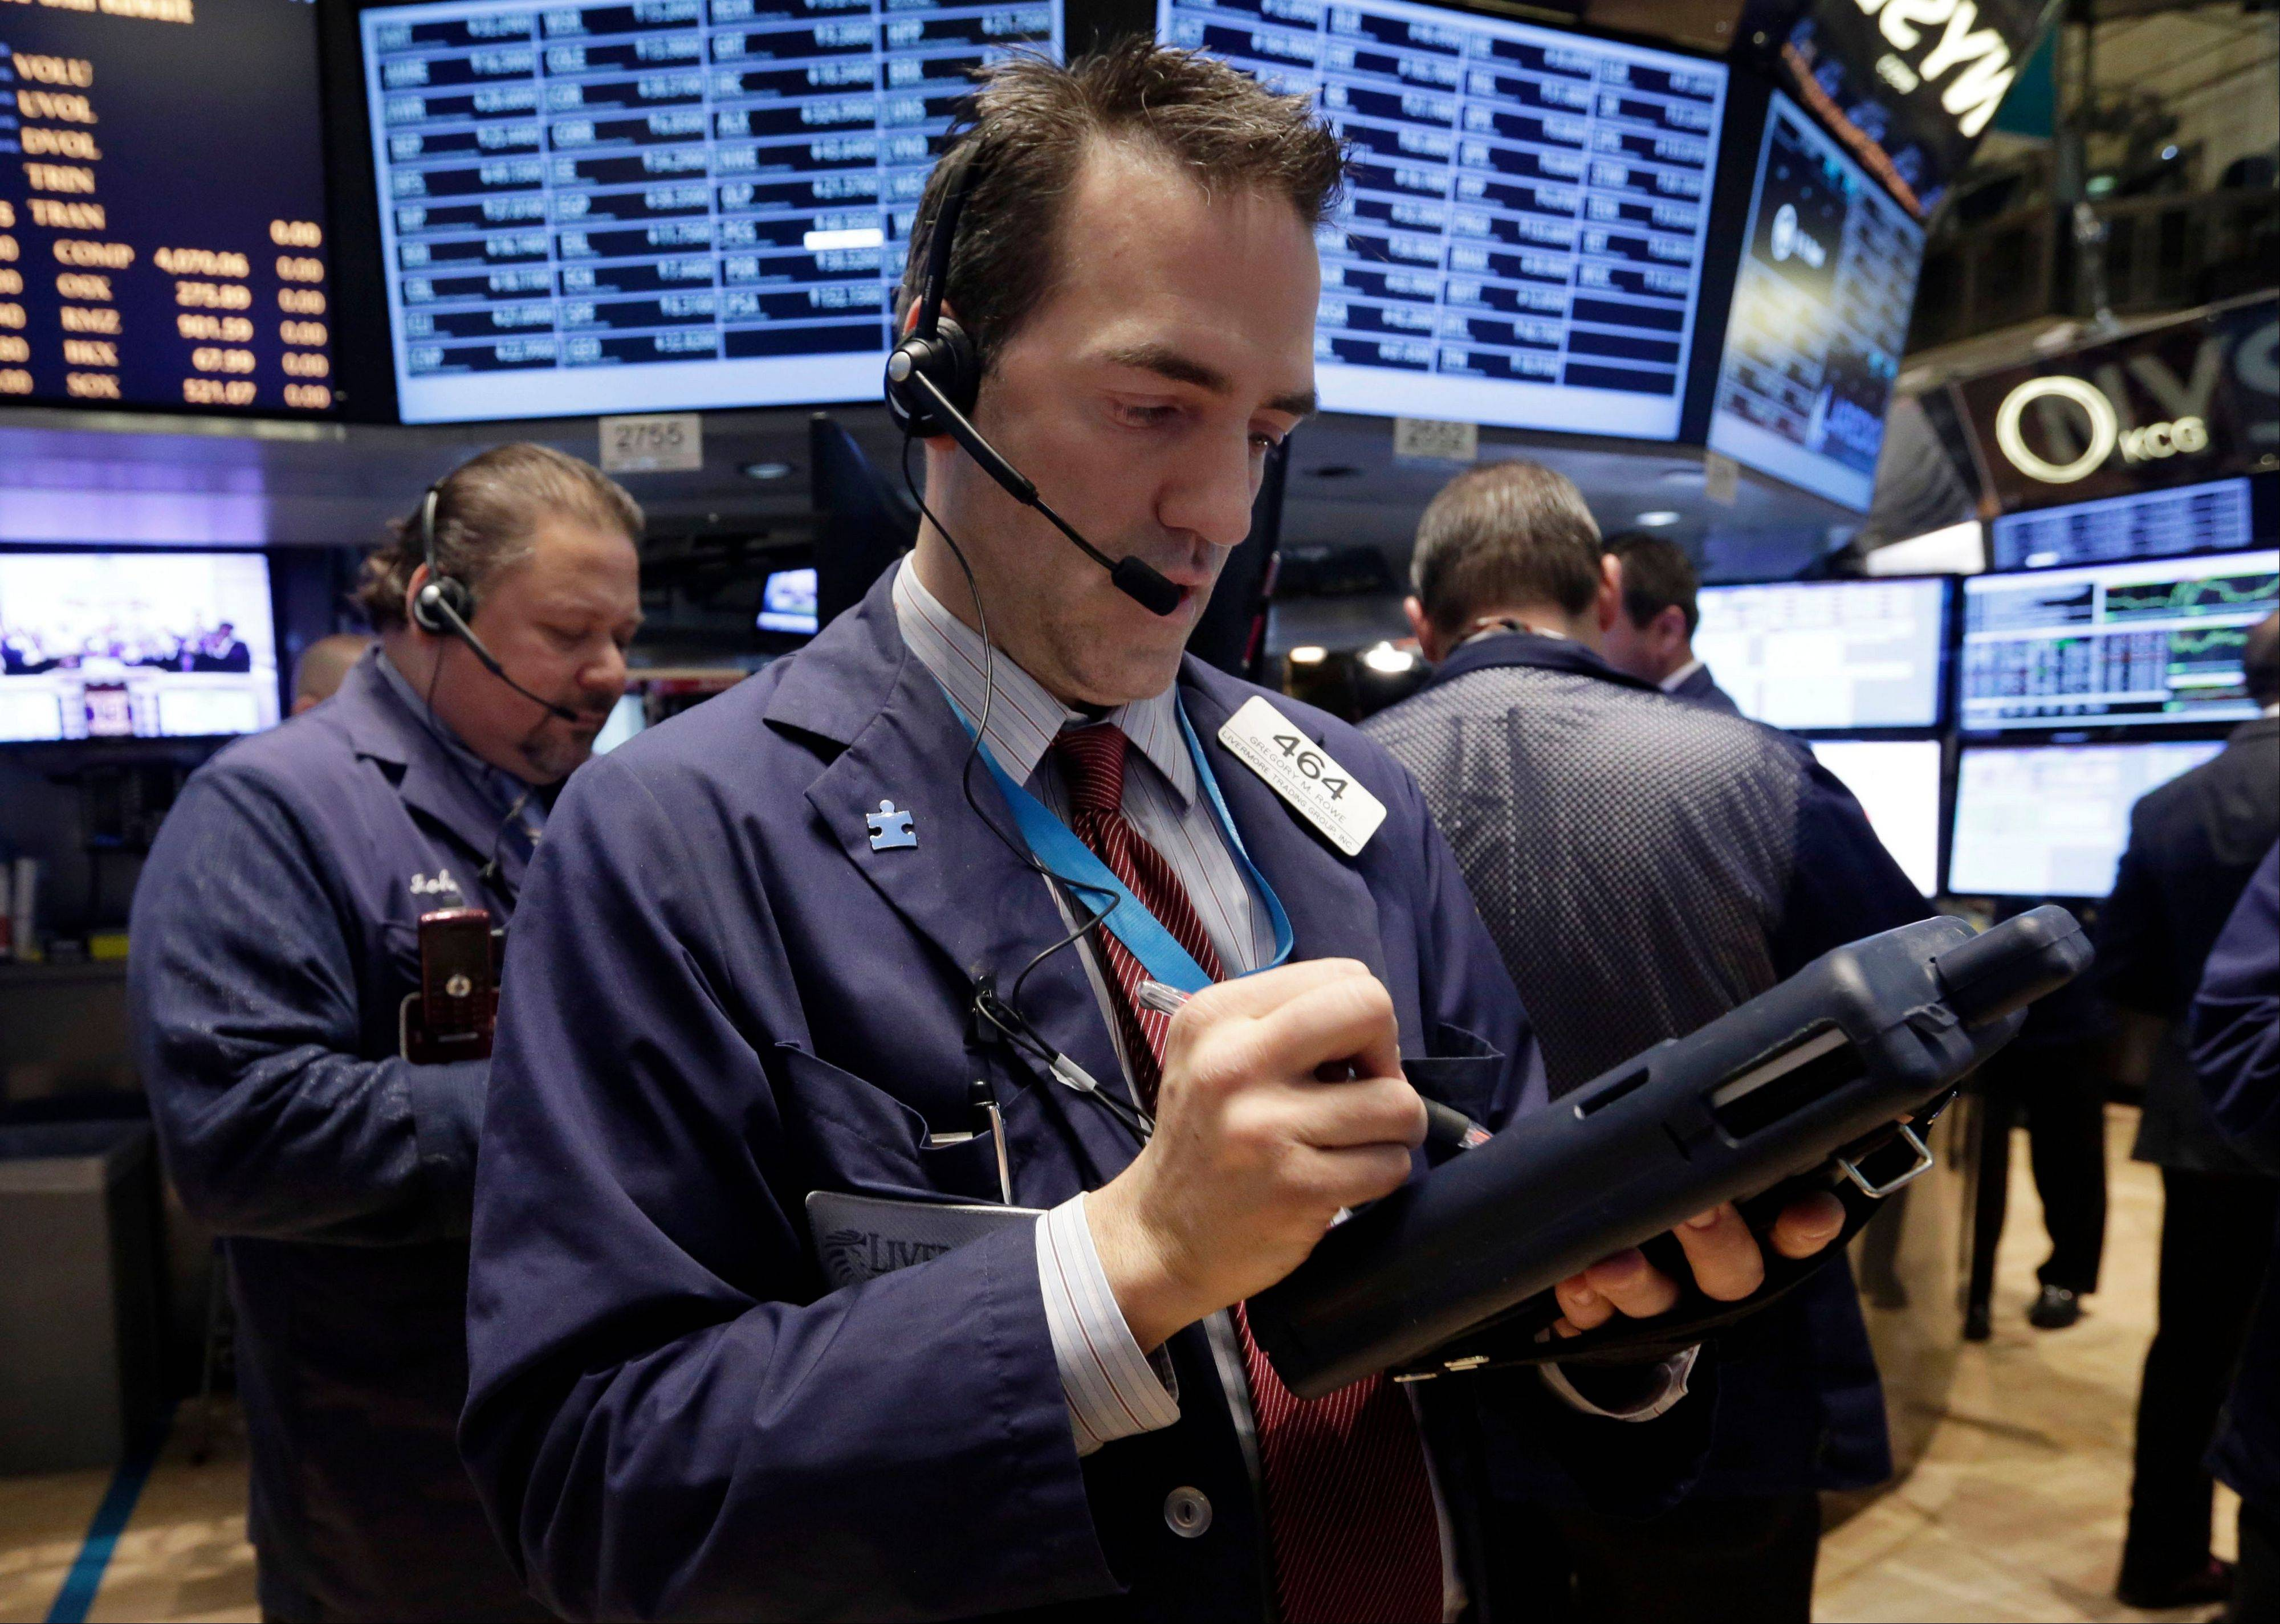 The Standard & Poor�s 500 Index retreated Thursday from a record, set after the Federal Reserve�s decision to cut stimulus a day earlier, as investors weighed economic data that included jobless claims and home sales.